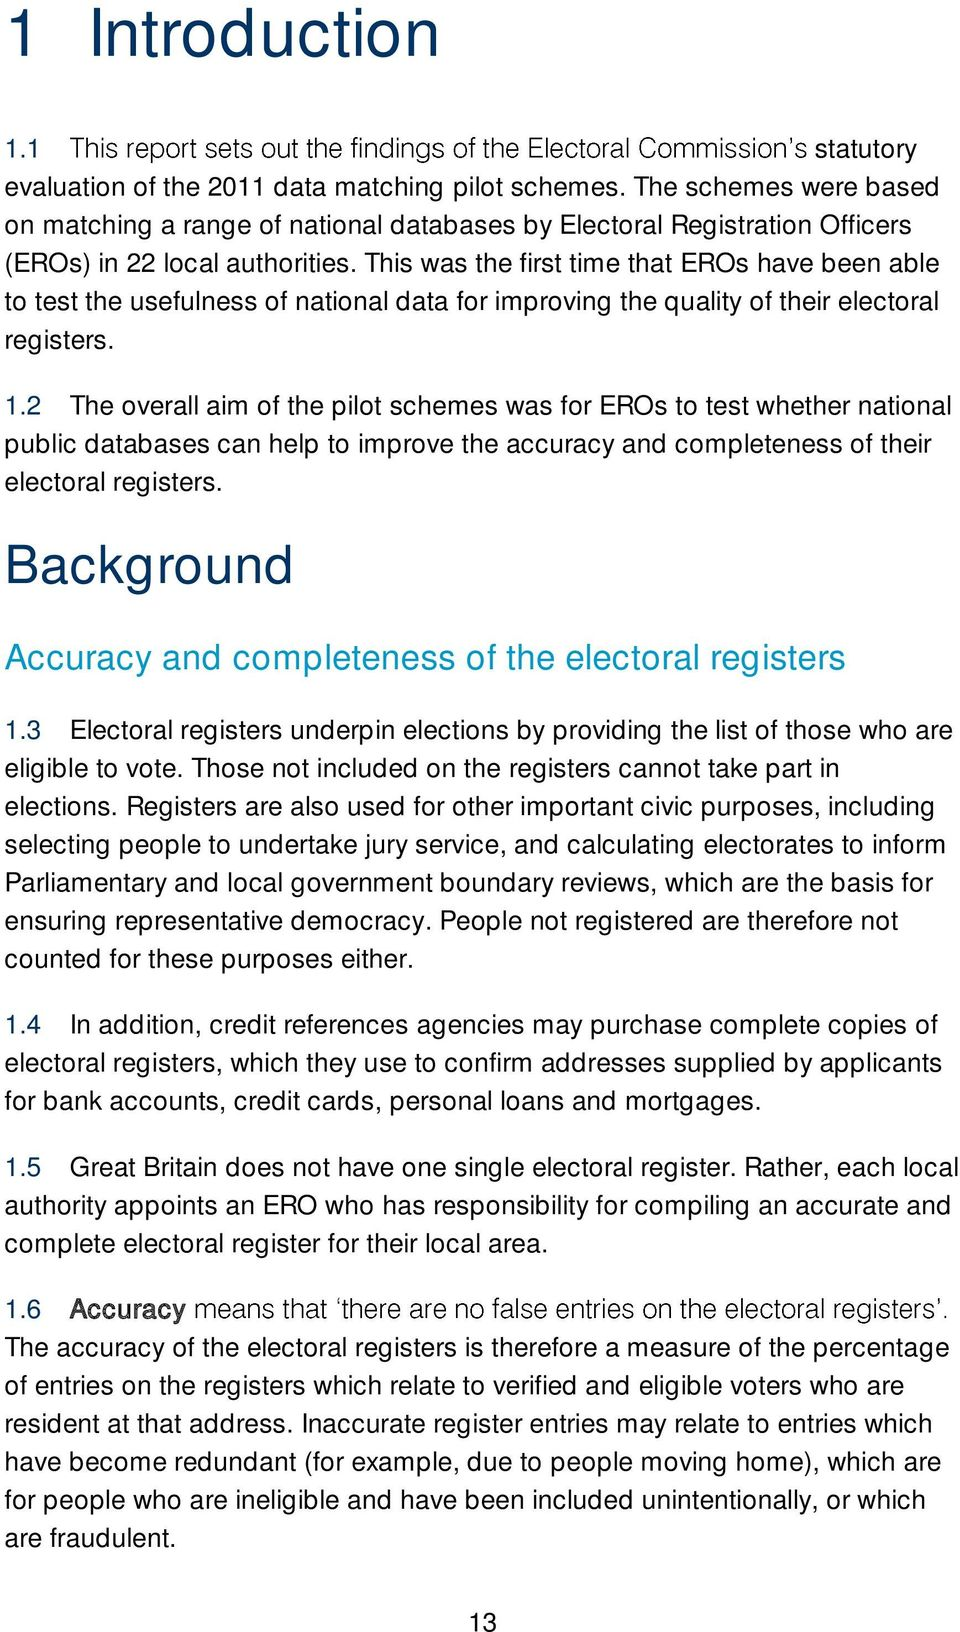 This was the first time that EROs have been able to test the usefulness of national data for improving the quality of their electoral registers. 1.